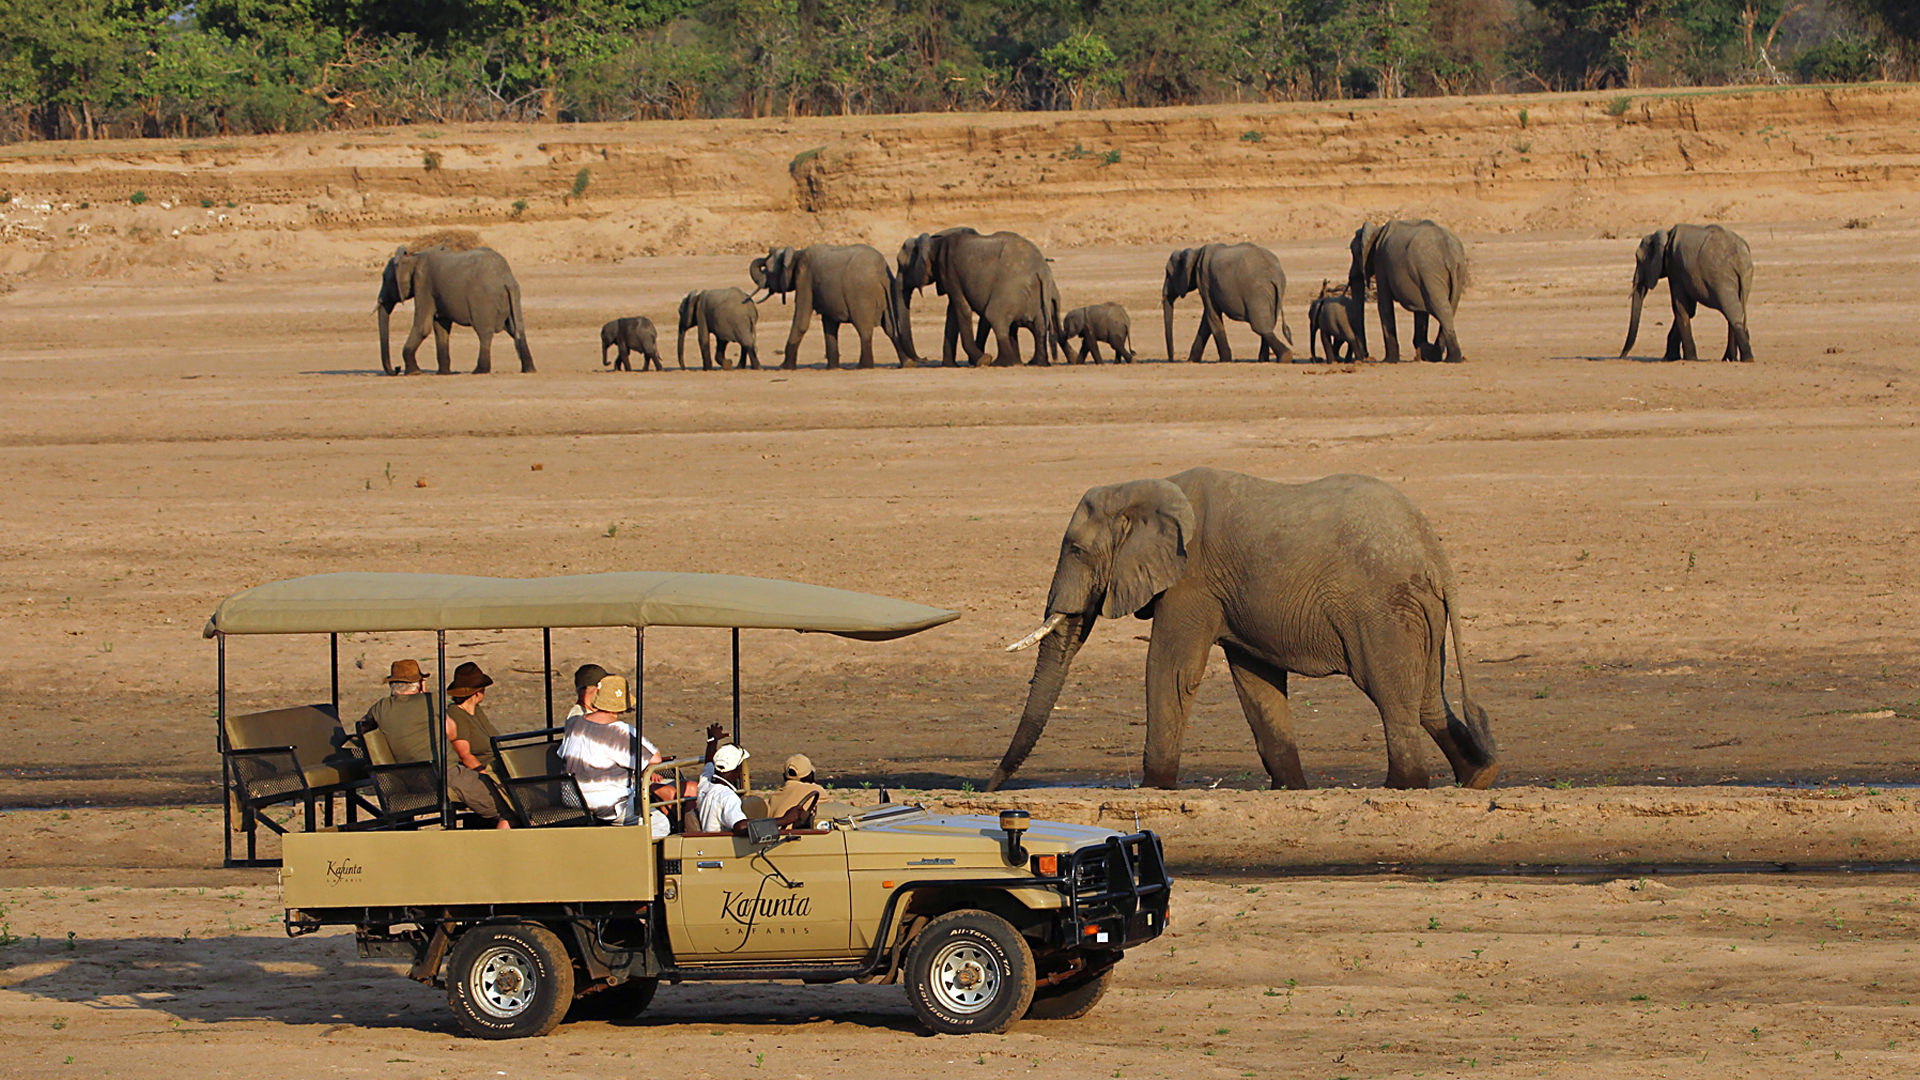 zambia itineraries kafunta game drive with elephants